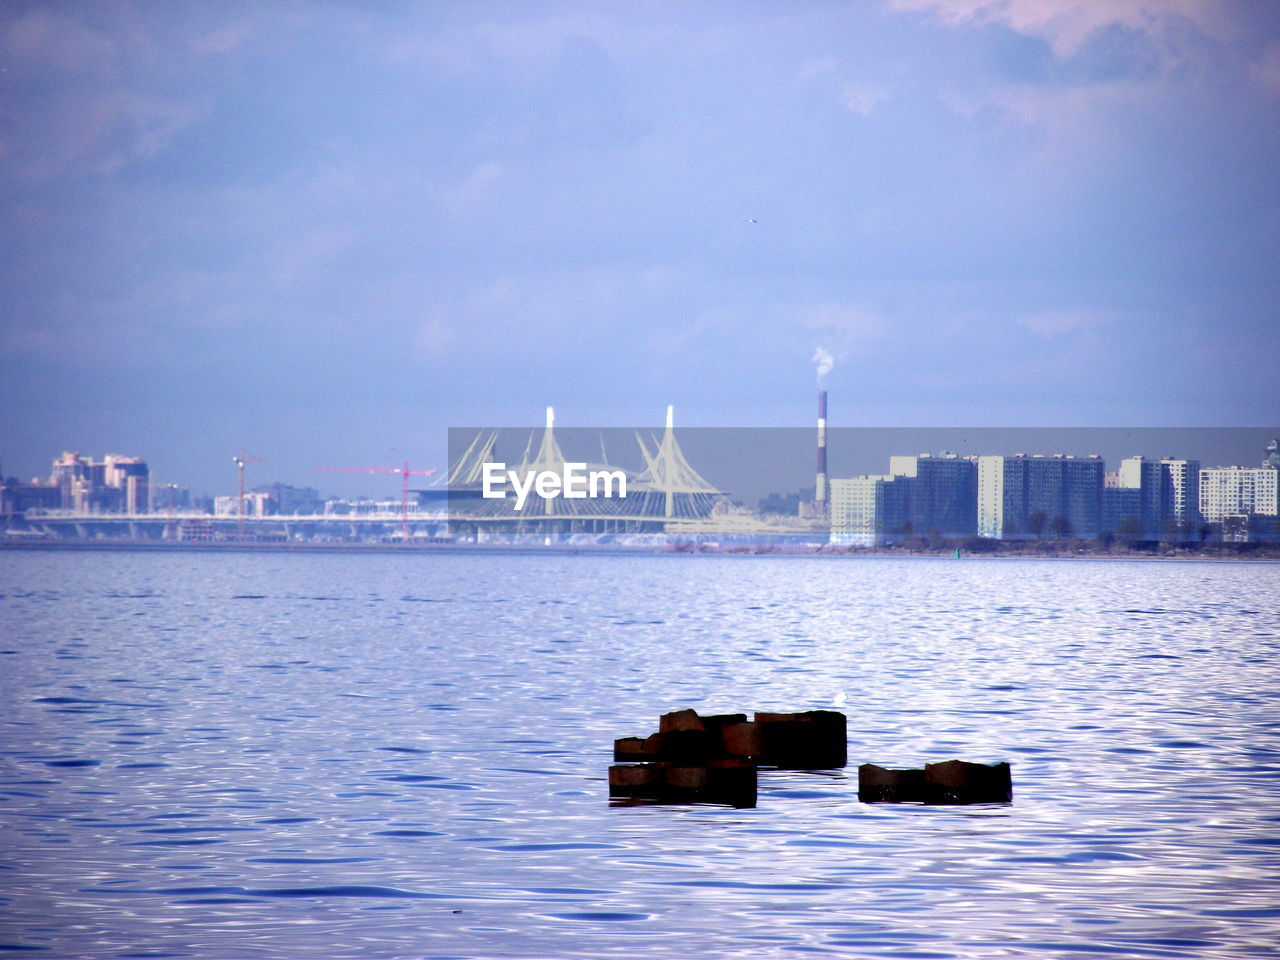 water, architecture, waterfront, sky, built structure, building exterior, industry, city, cloud - sky, crane - construction machinery, transportation, nature, no people, sea, day, machinery, outdoors, business, skyscraper, office building exterior, bay